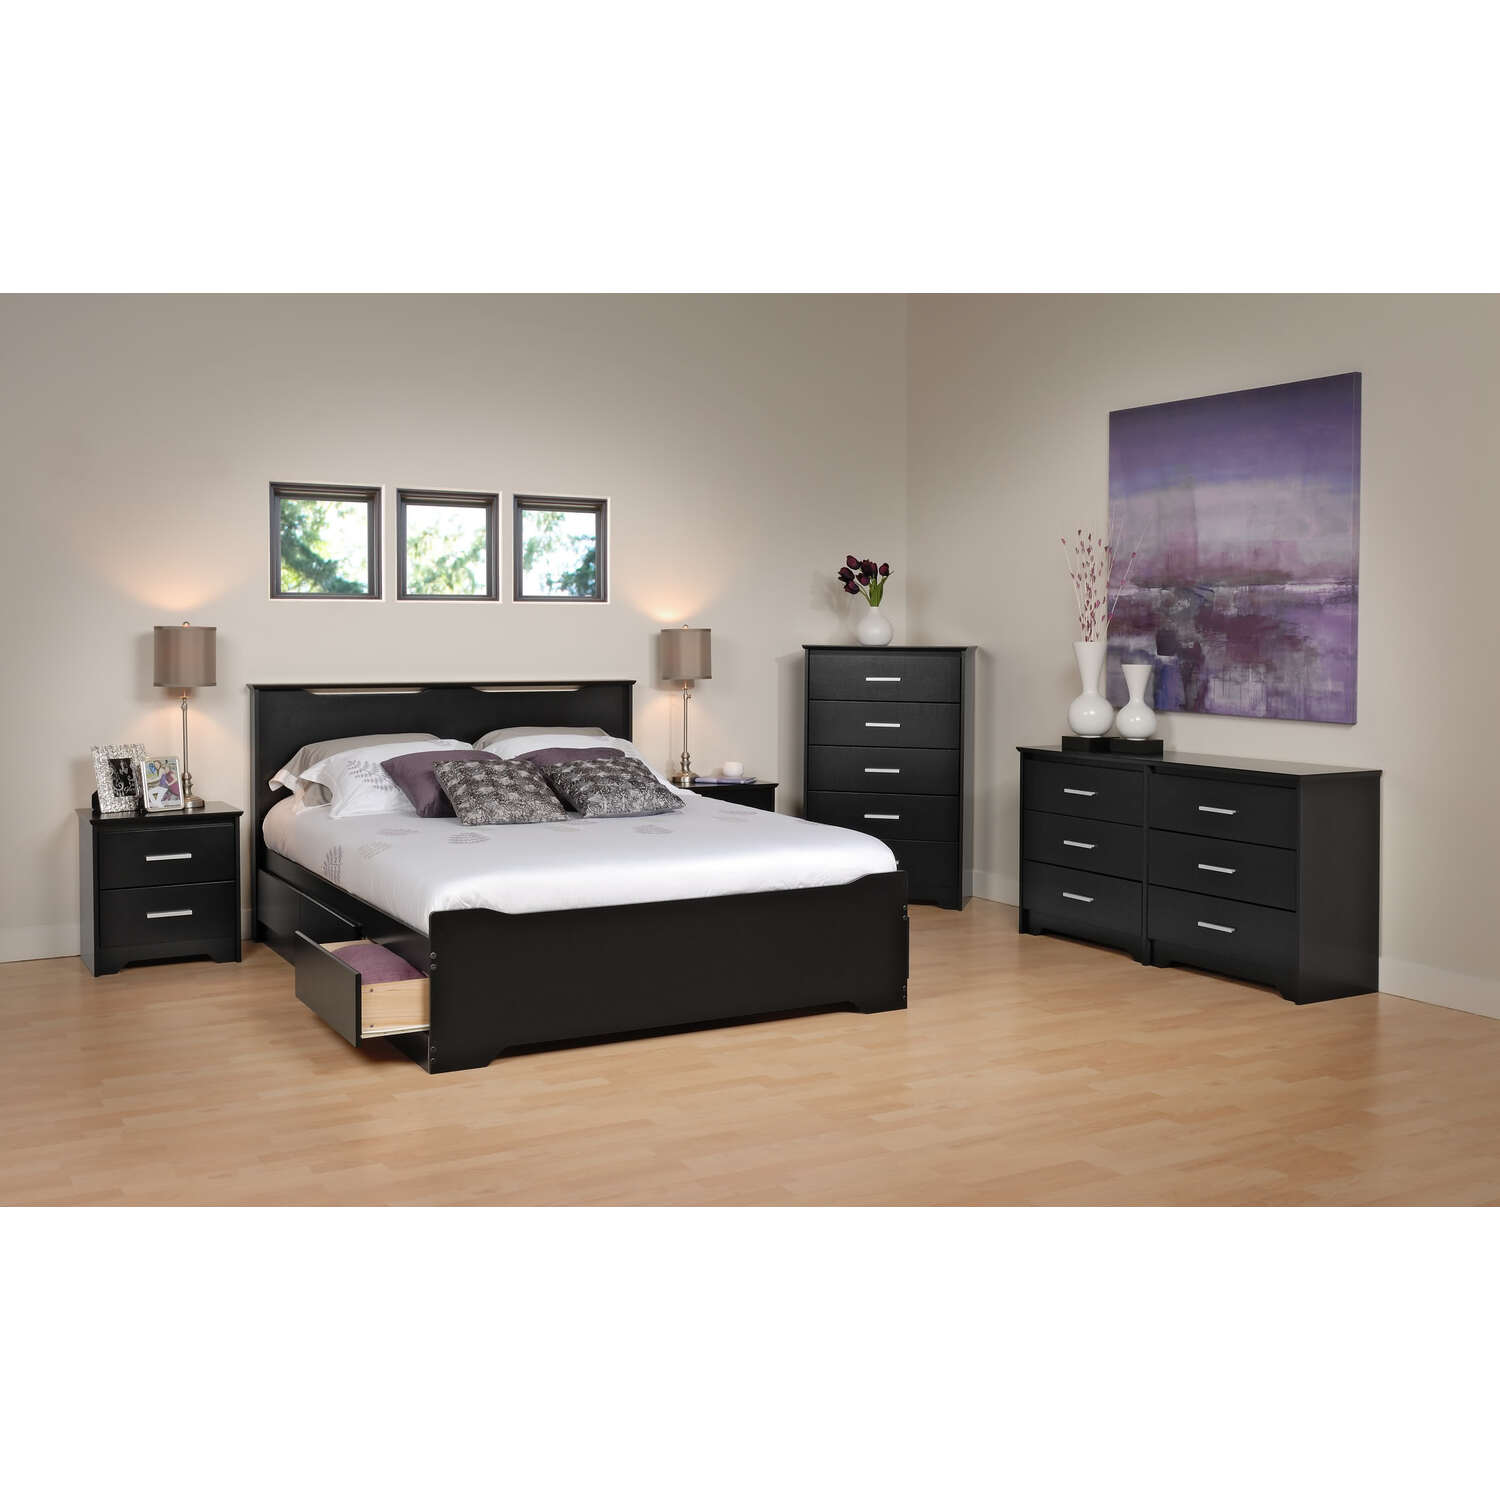 Prepac coal harbor full 6 piece bedroom set by oj commerce for Bedroom 6 piece set